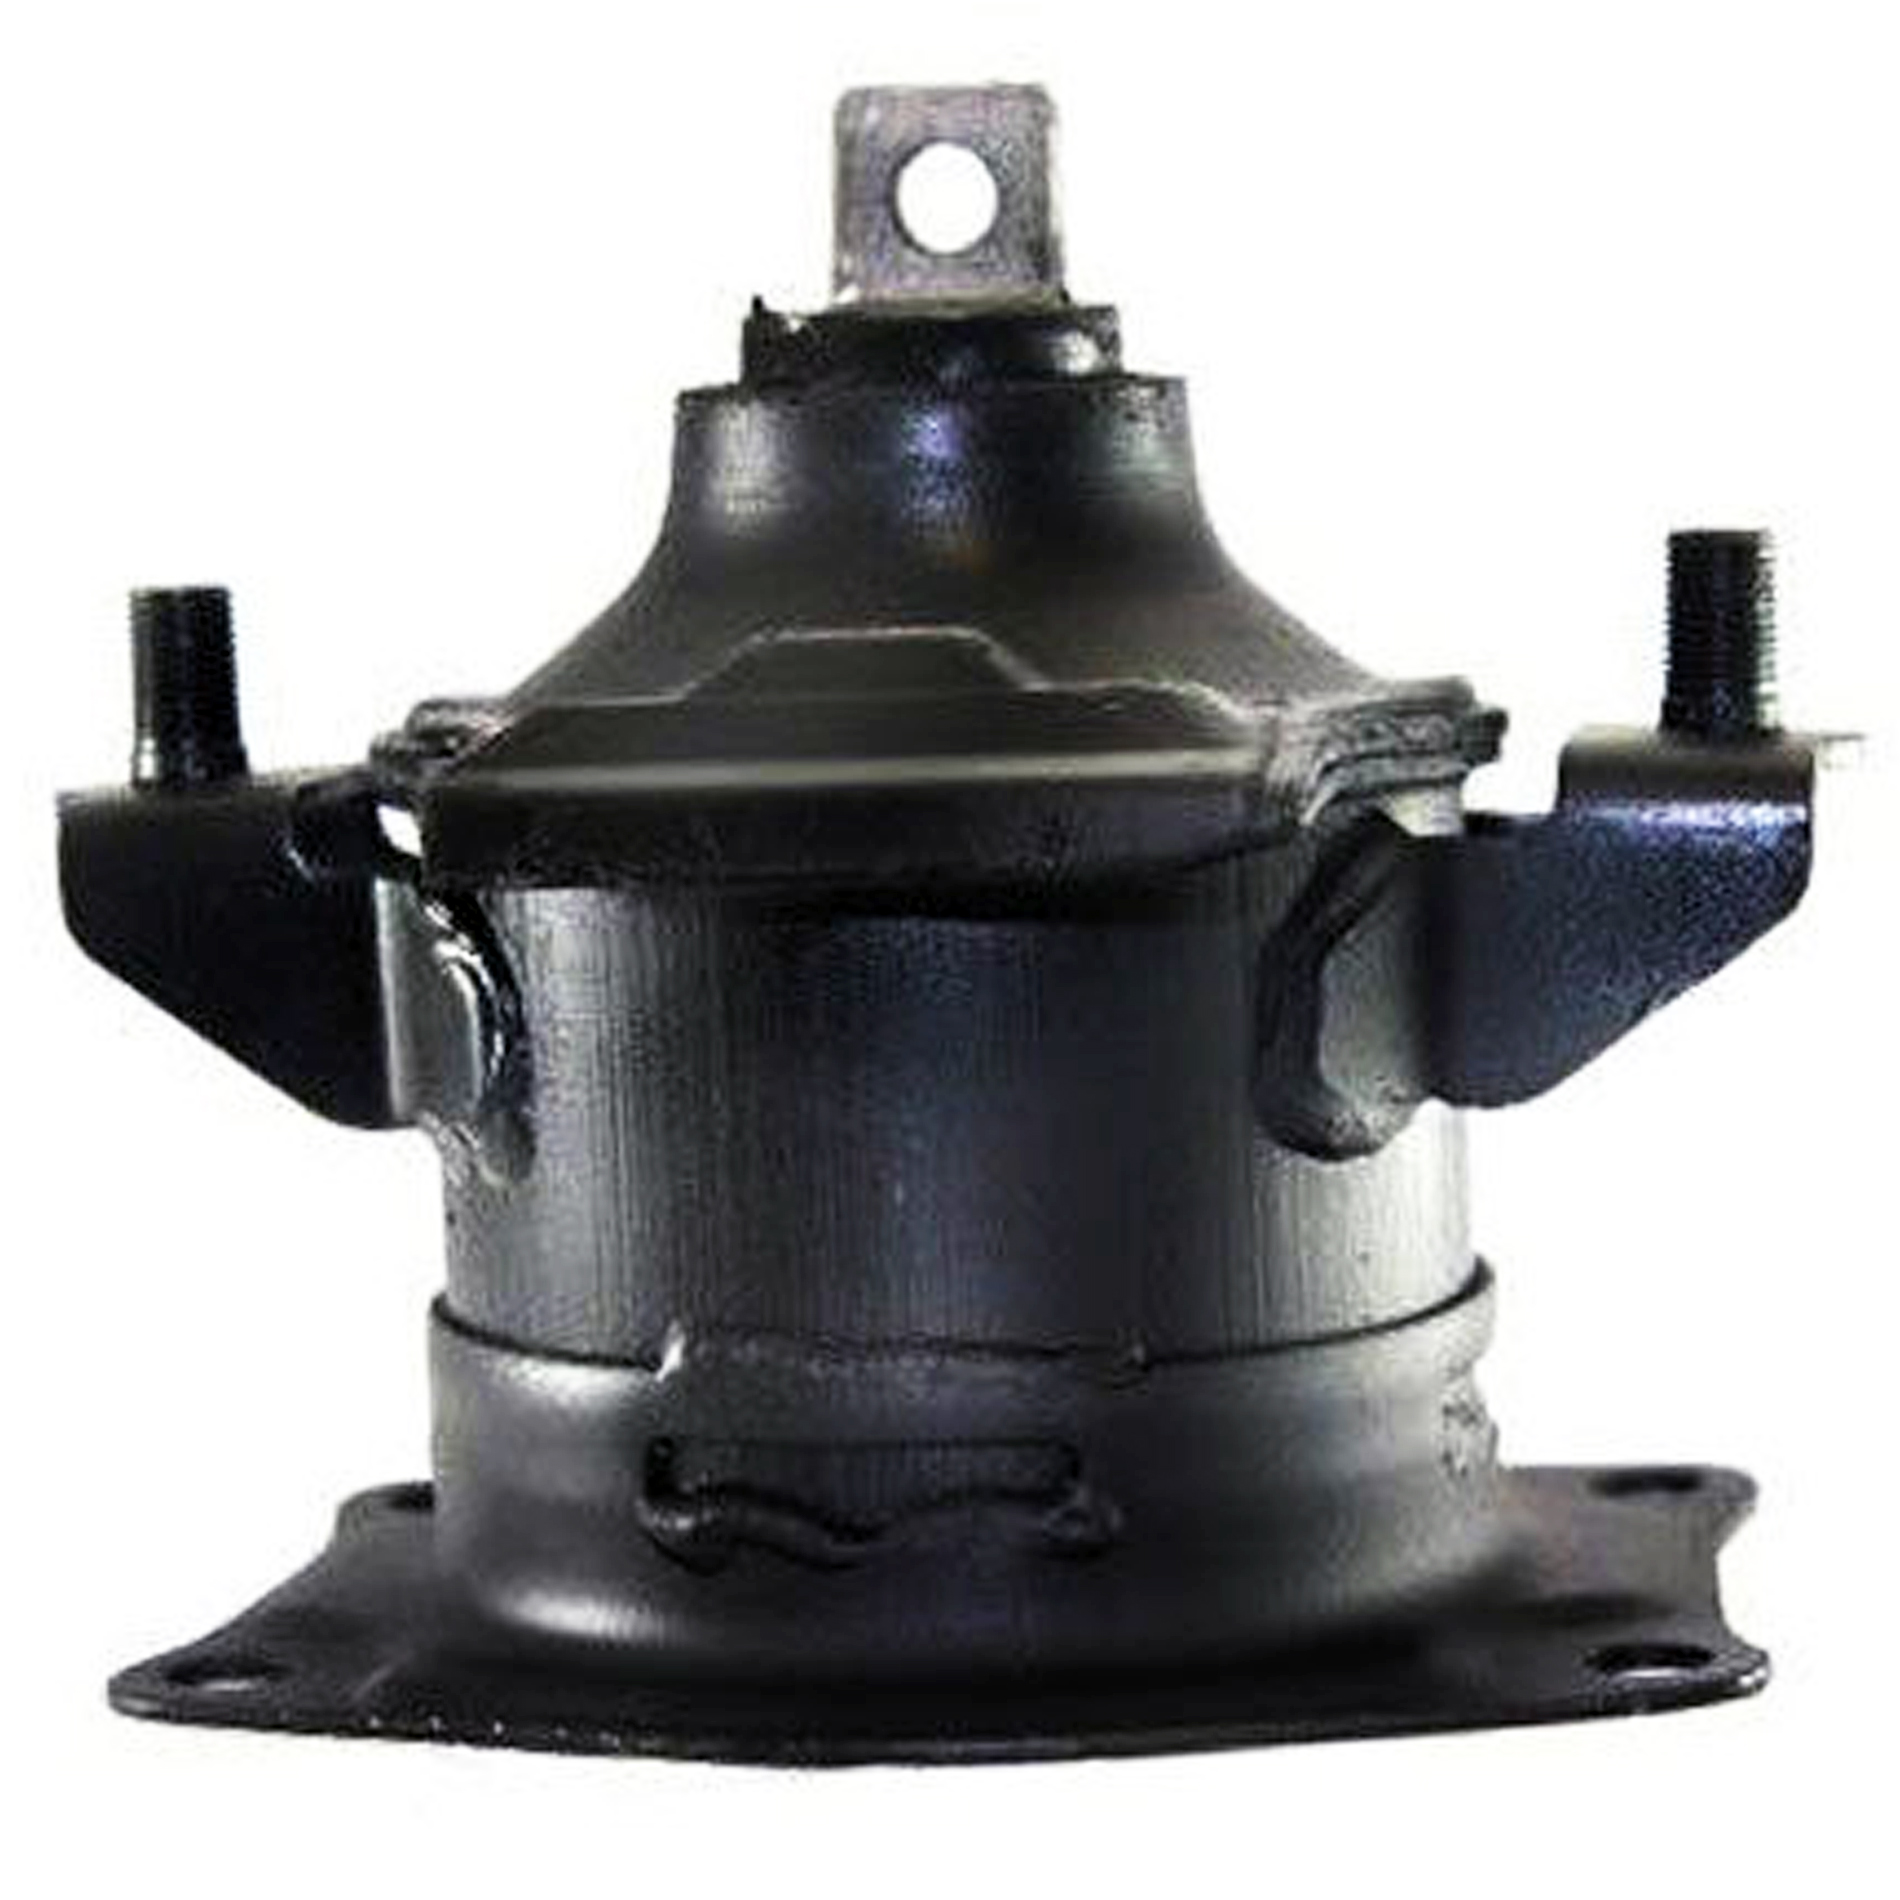 - HYDRAULIC FRONT LOWER SIDE ENGINE MOUNT. 3.5L, V6 2007-2008 ACURA TL FITS